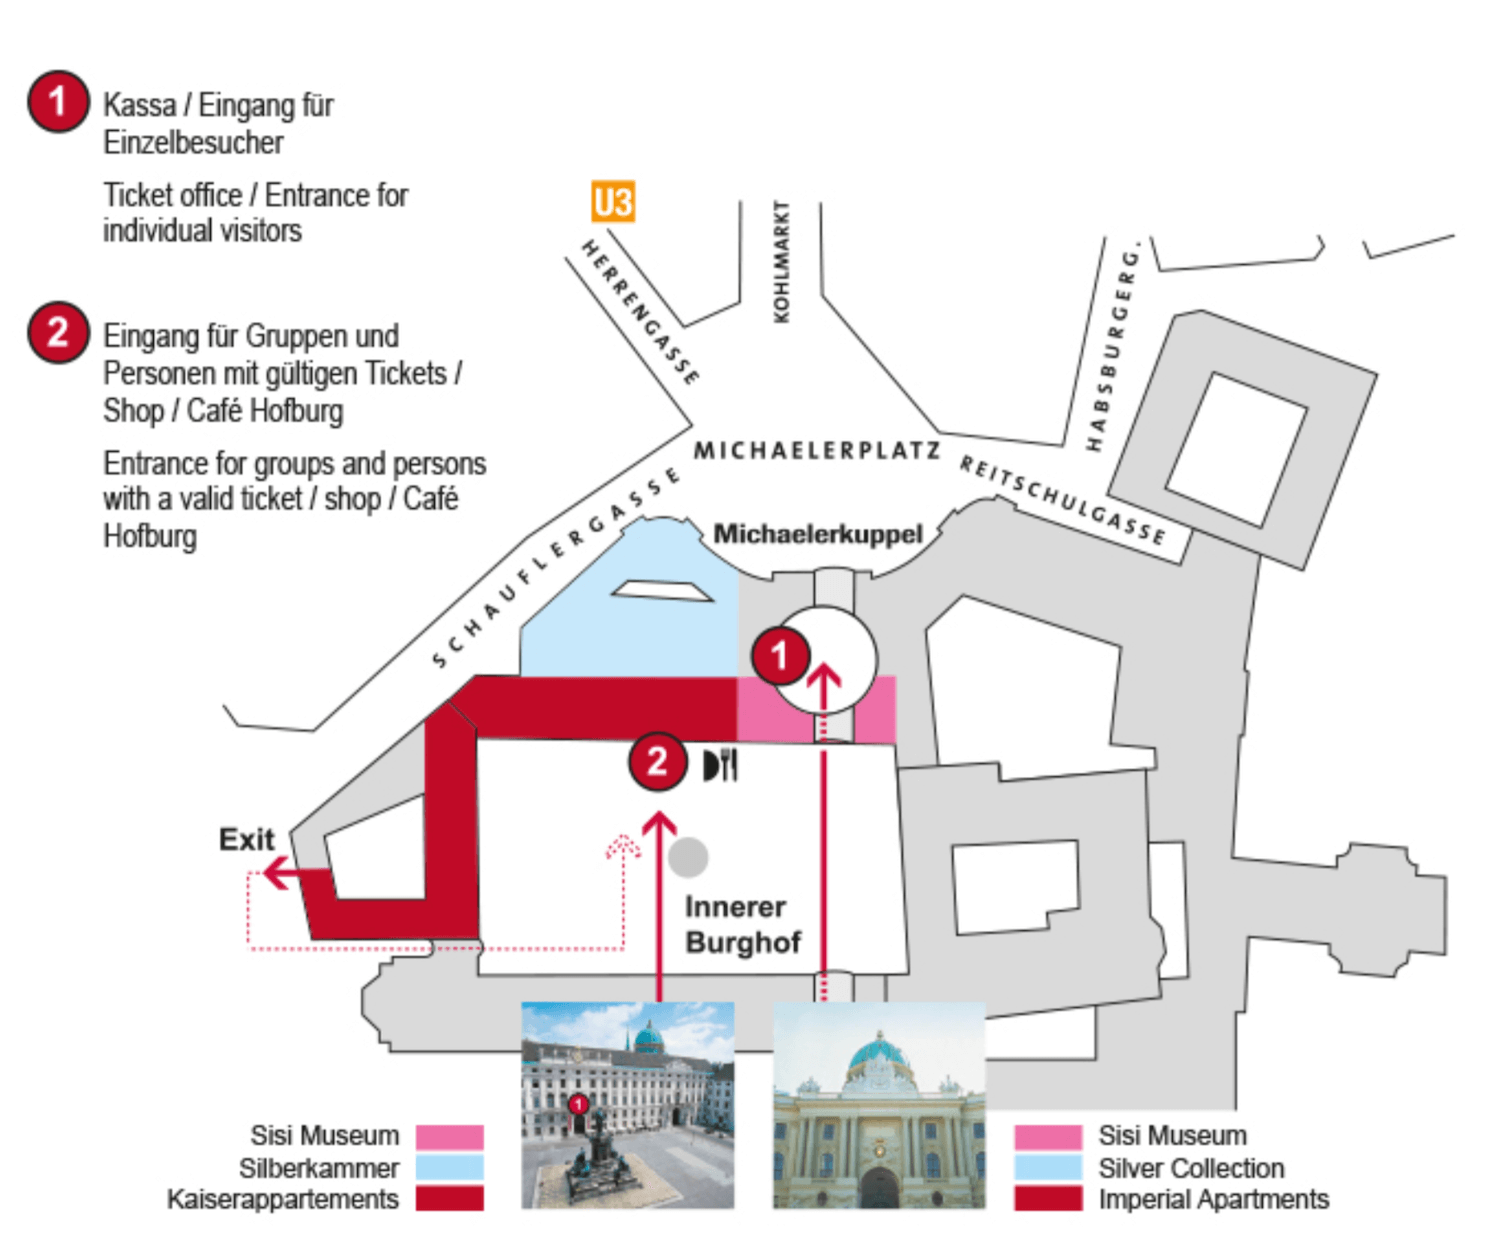 Hofburg Palace Map - Sisi Museum, Imperial Apartments, Silver Collection